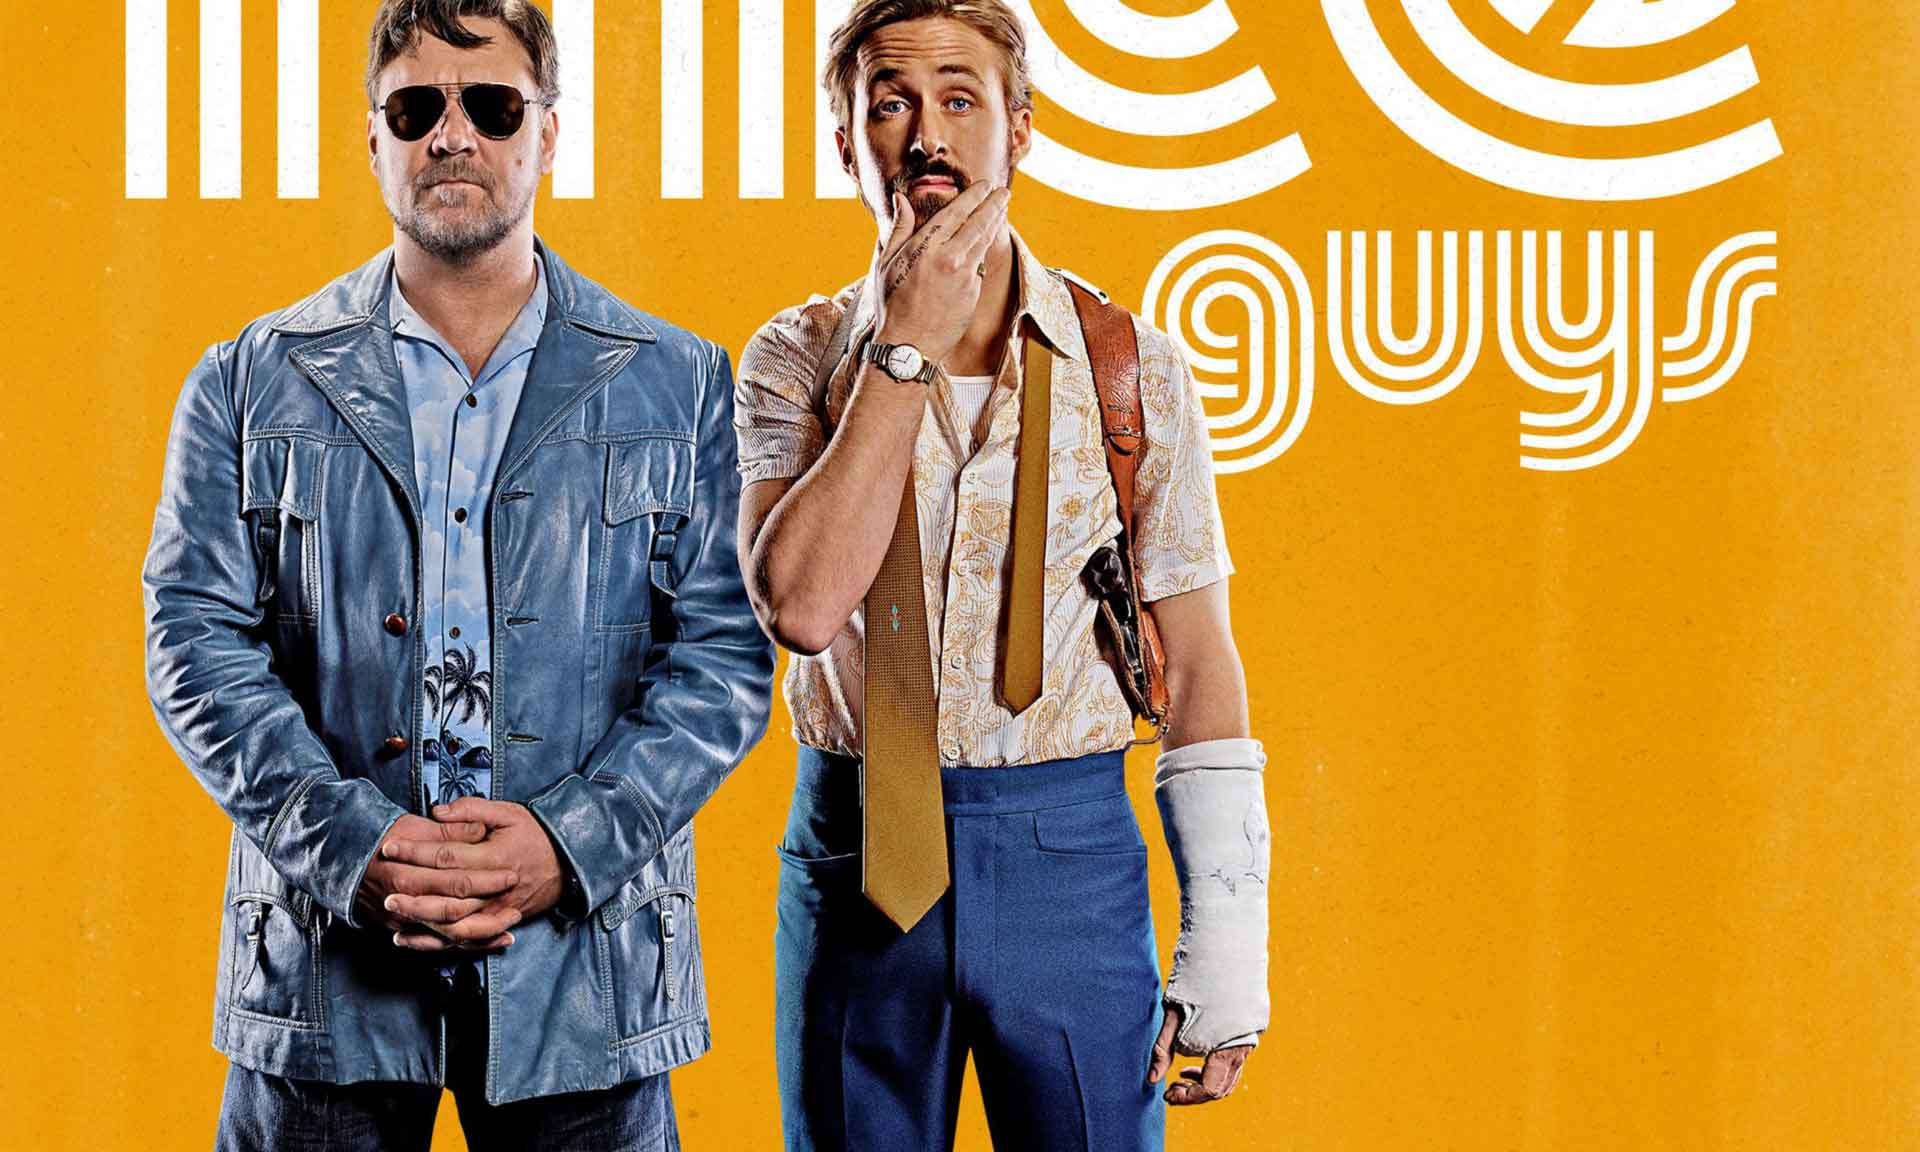 The Nice Guys Poster Is Here - OC Movie Reviews - Movie Reviews, Movie News, Documentary Reviews, Short Films, Short Film Reviews, Trailers, Movie Trailers, Interviews, film reviews, film news, hollywood, indie films, documentaries